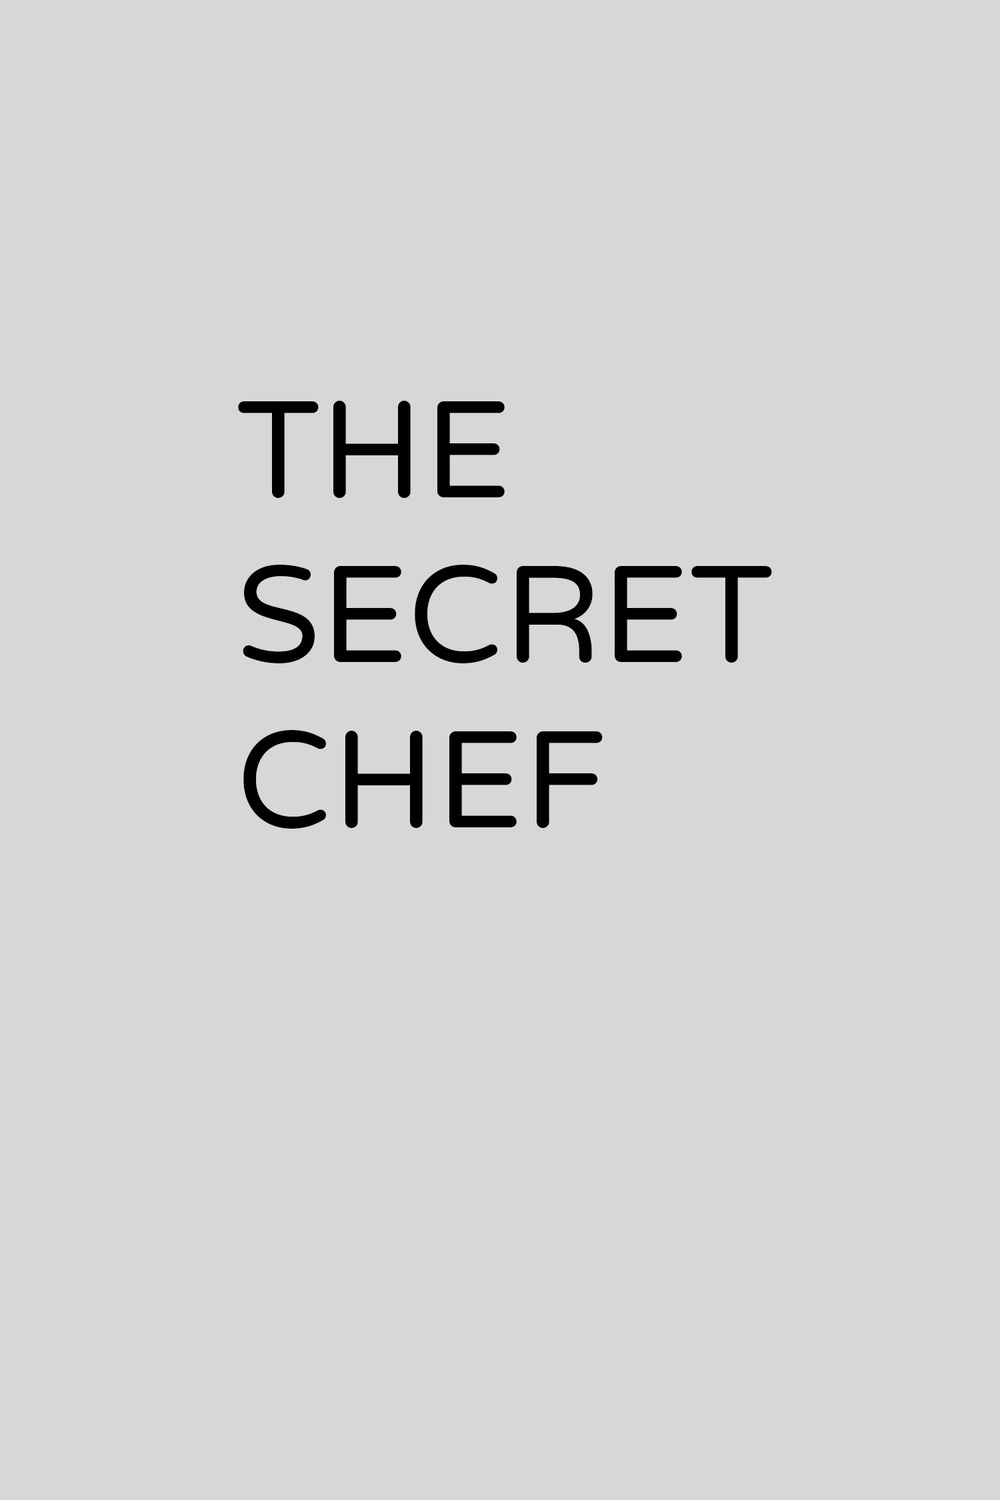 the secret chef